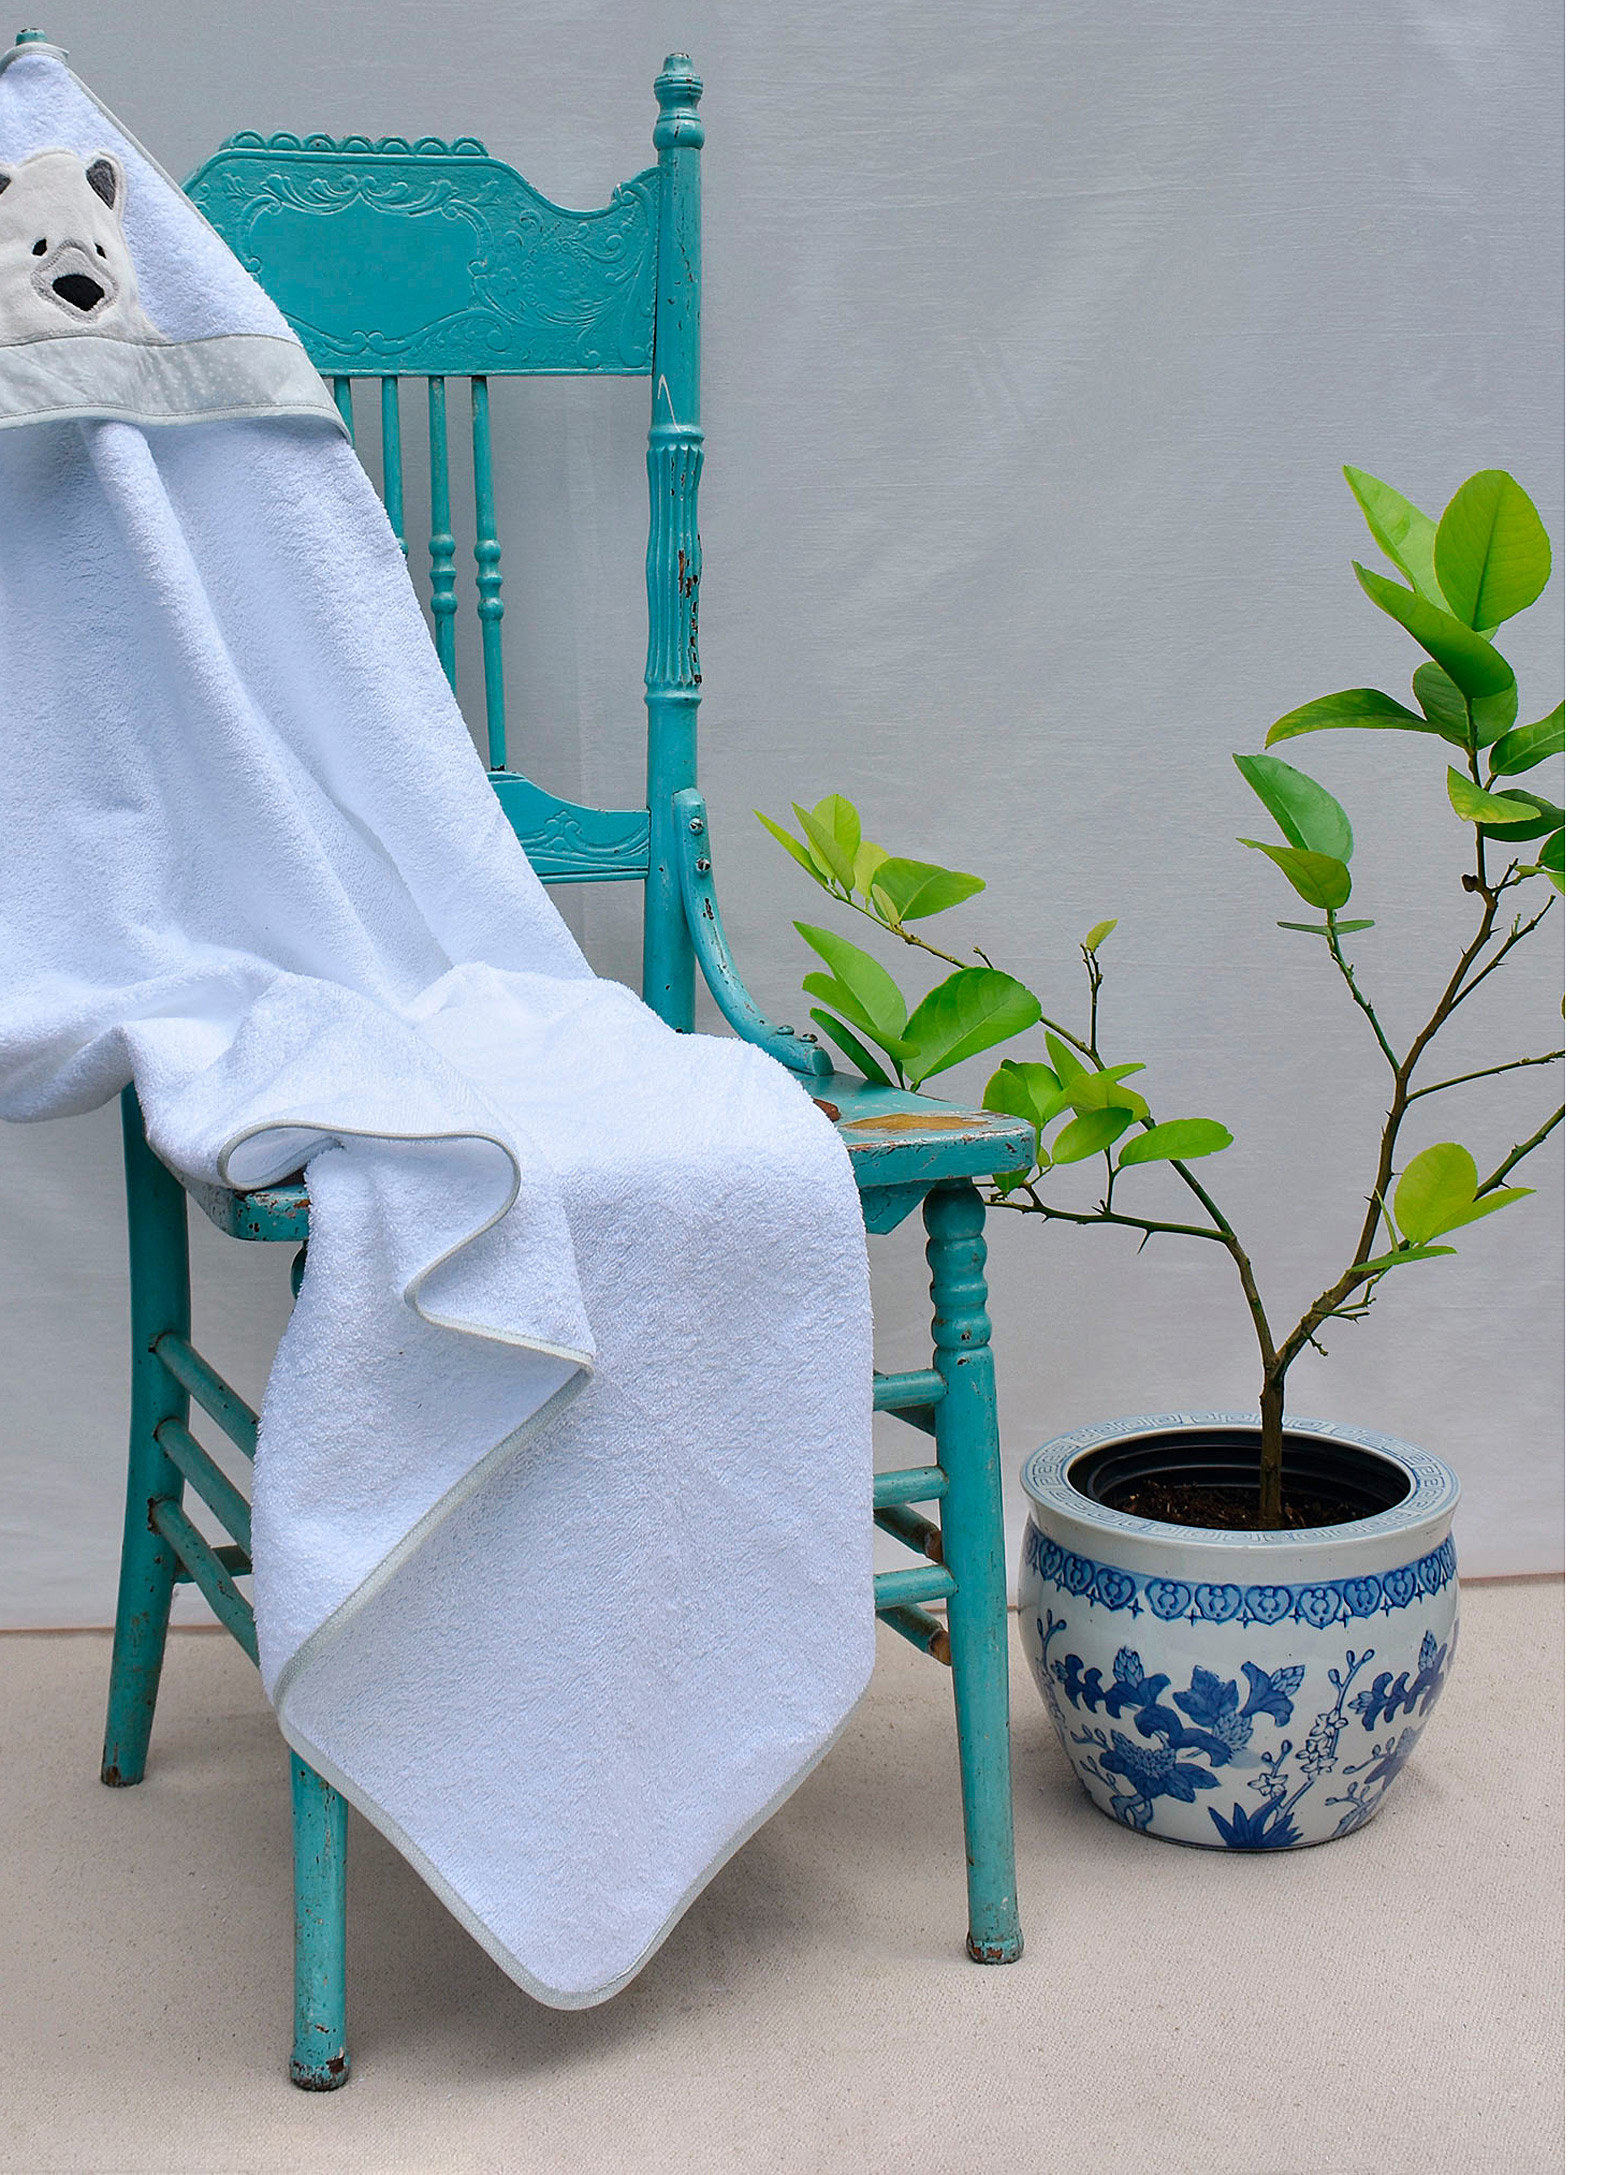 A hooded baby towel resting on a small chair